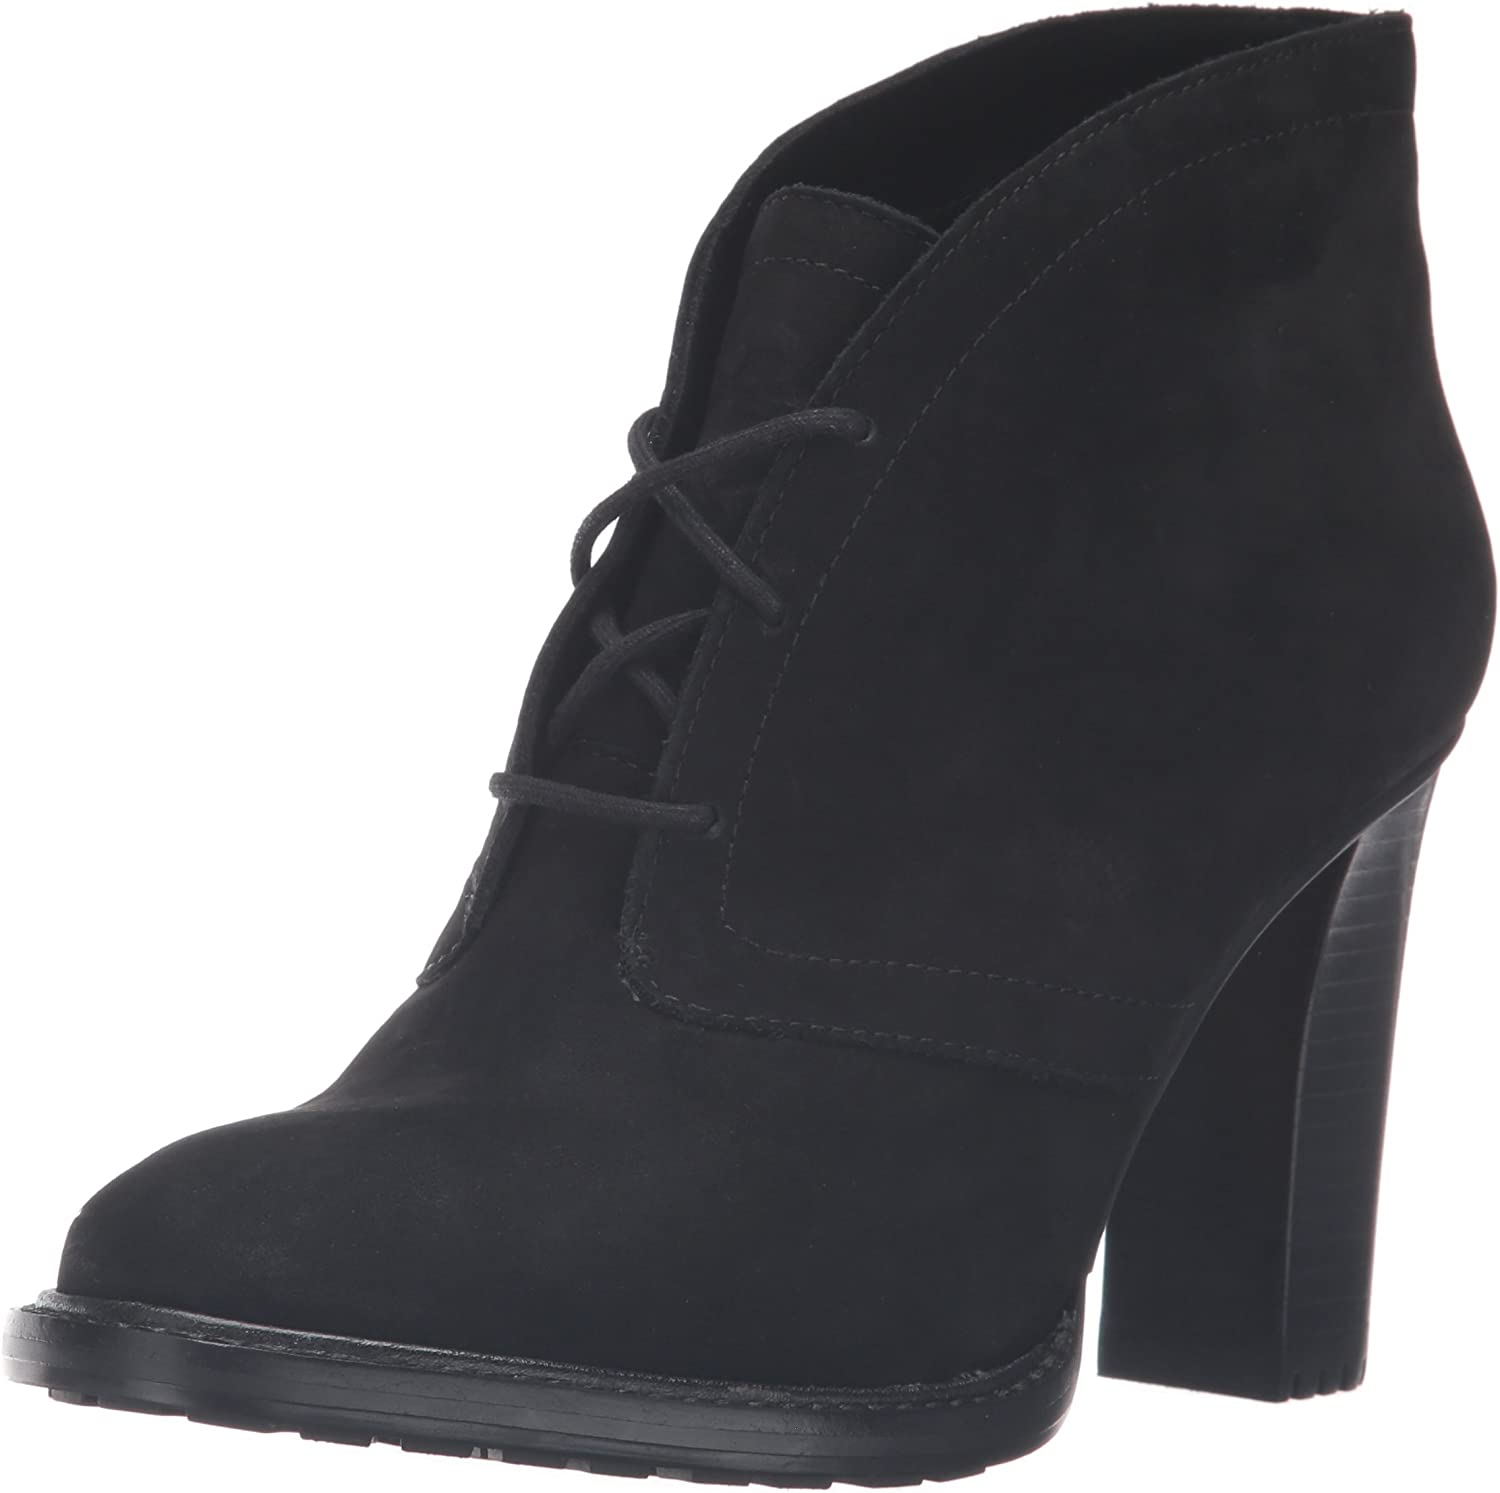 Vince Camuto Womens Lehanna Ankle Bootie